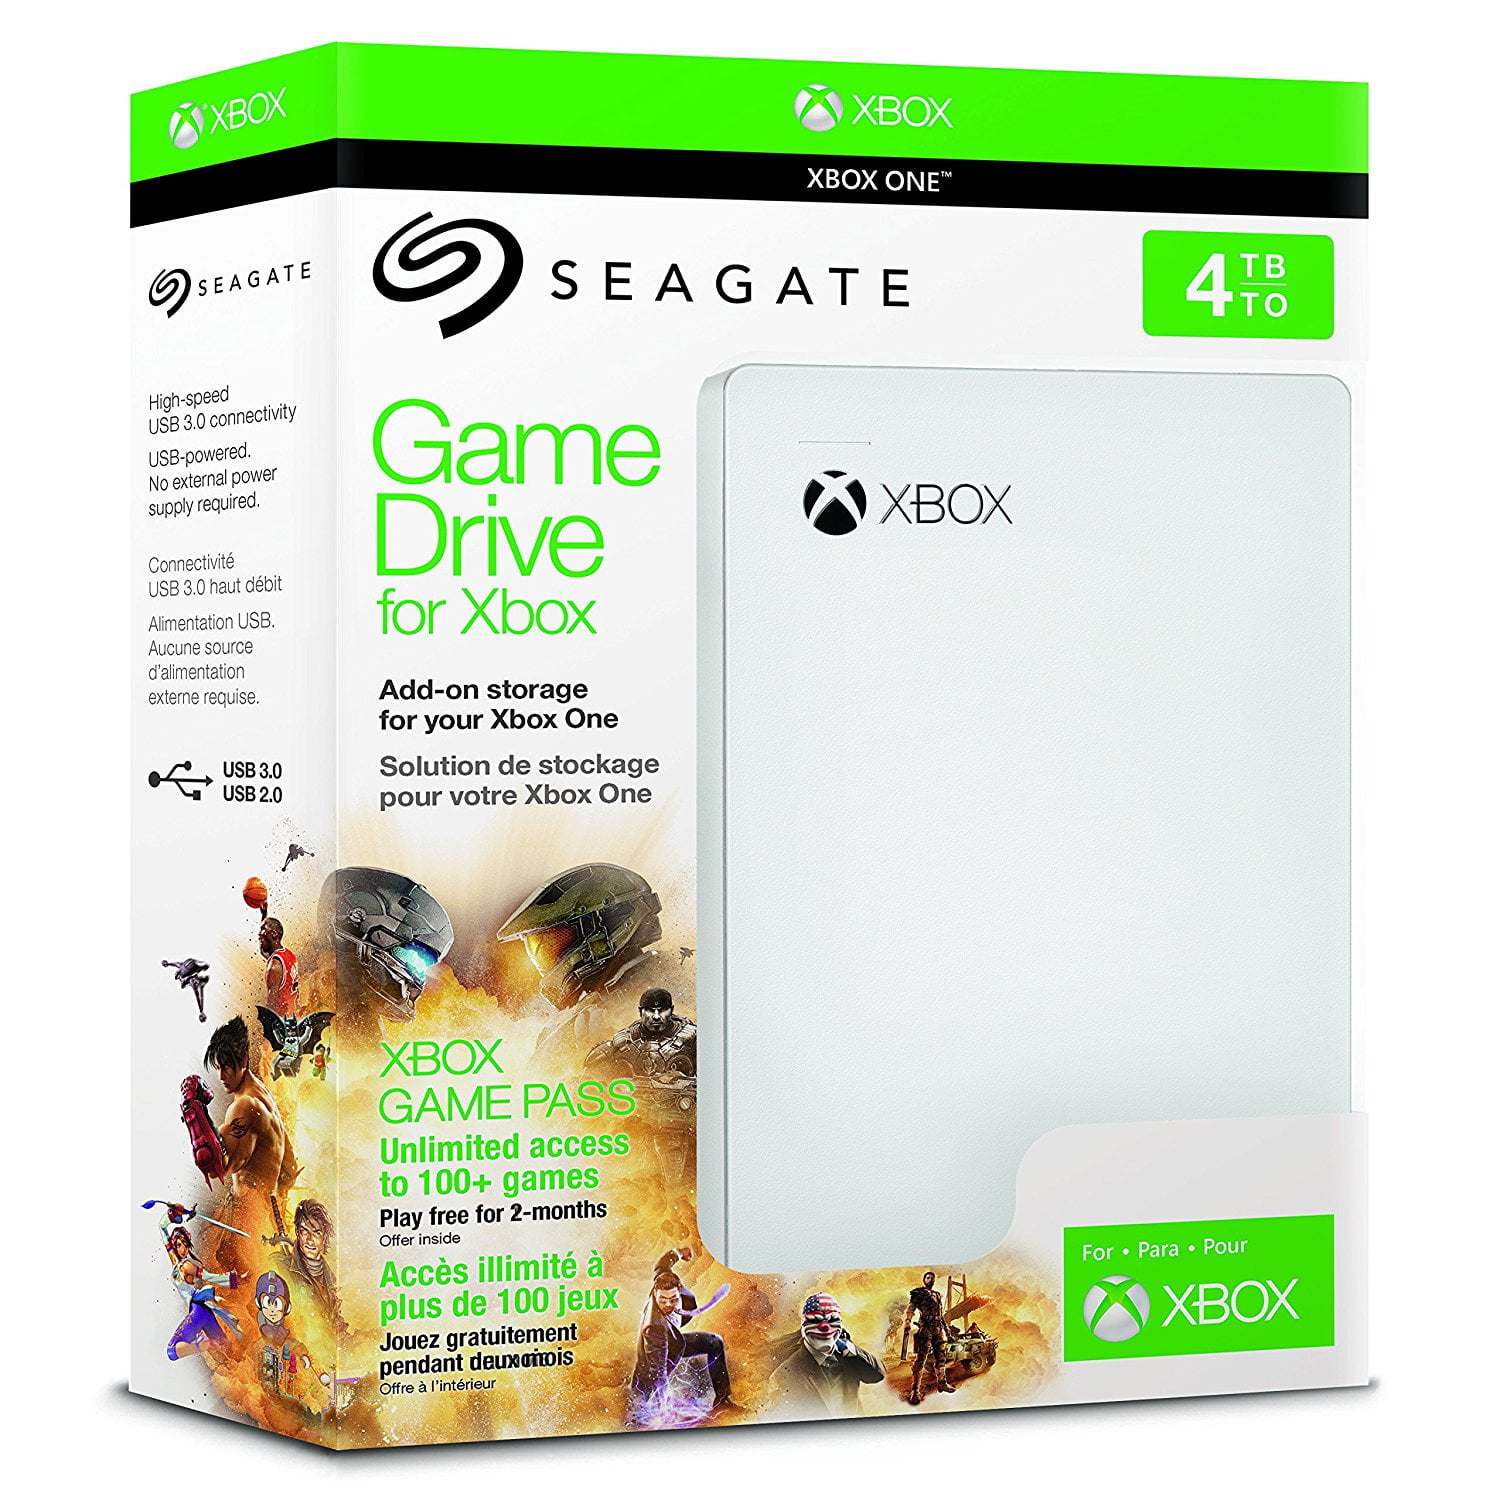 Le Disque Dur Officiel Seagate Xbox One Game Pass 4To